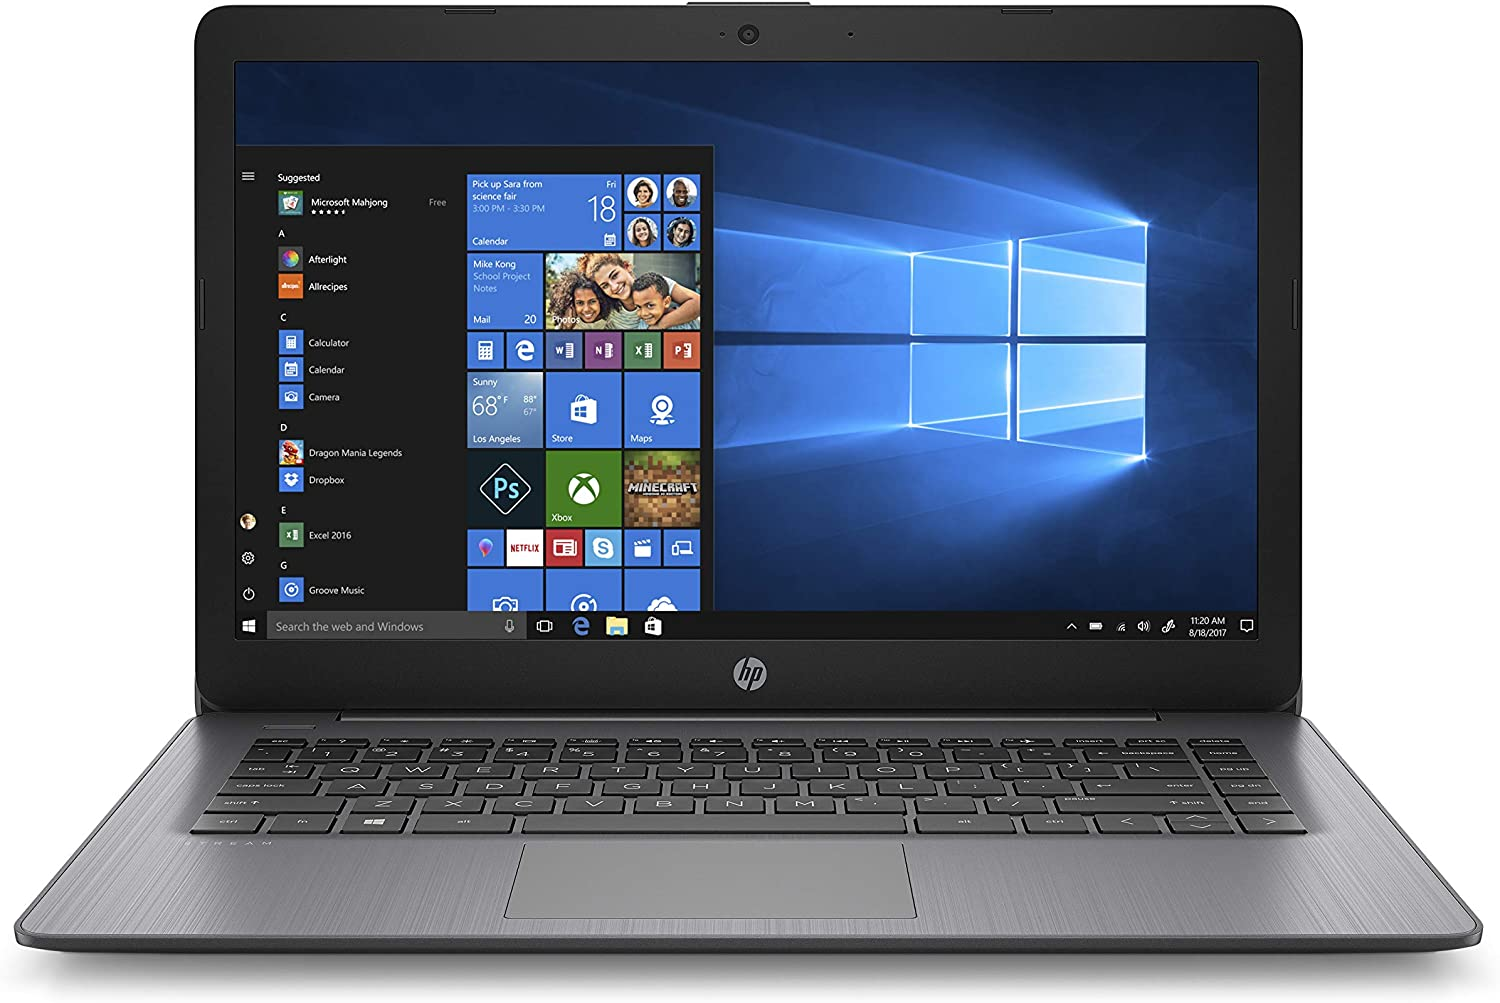 HP Stream 14-Inch Touchscreen Laptop, AMD Dual-Core A4-9120E Processor, 4 GB SDRAM, 64 GB eMMC, Windows 10 Home in S Mode with Office 365 Personal for One Year (14-ds0100nr, Brilliant Black),Blue